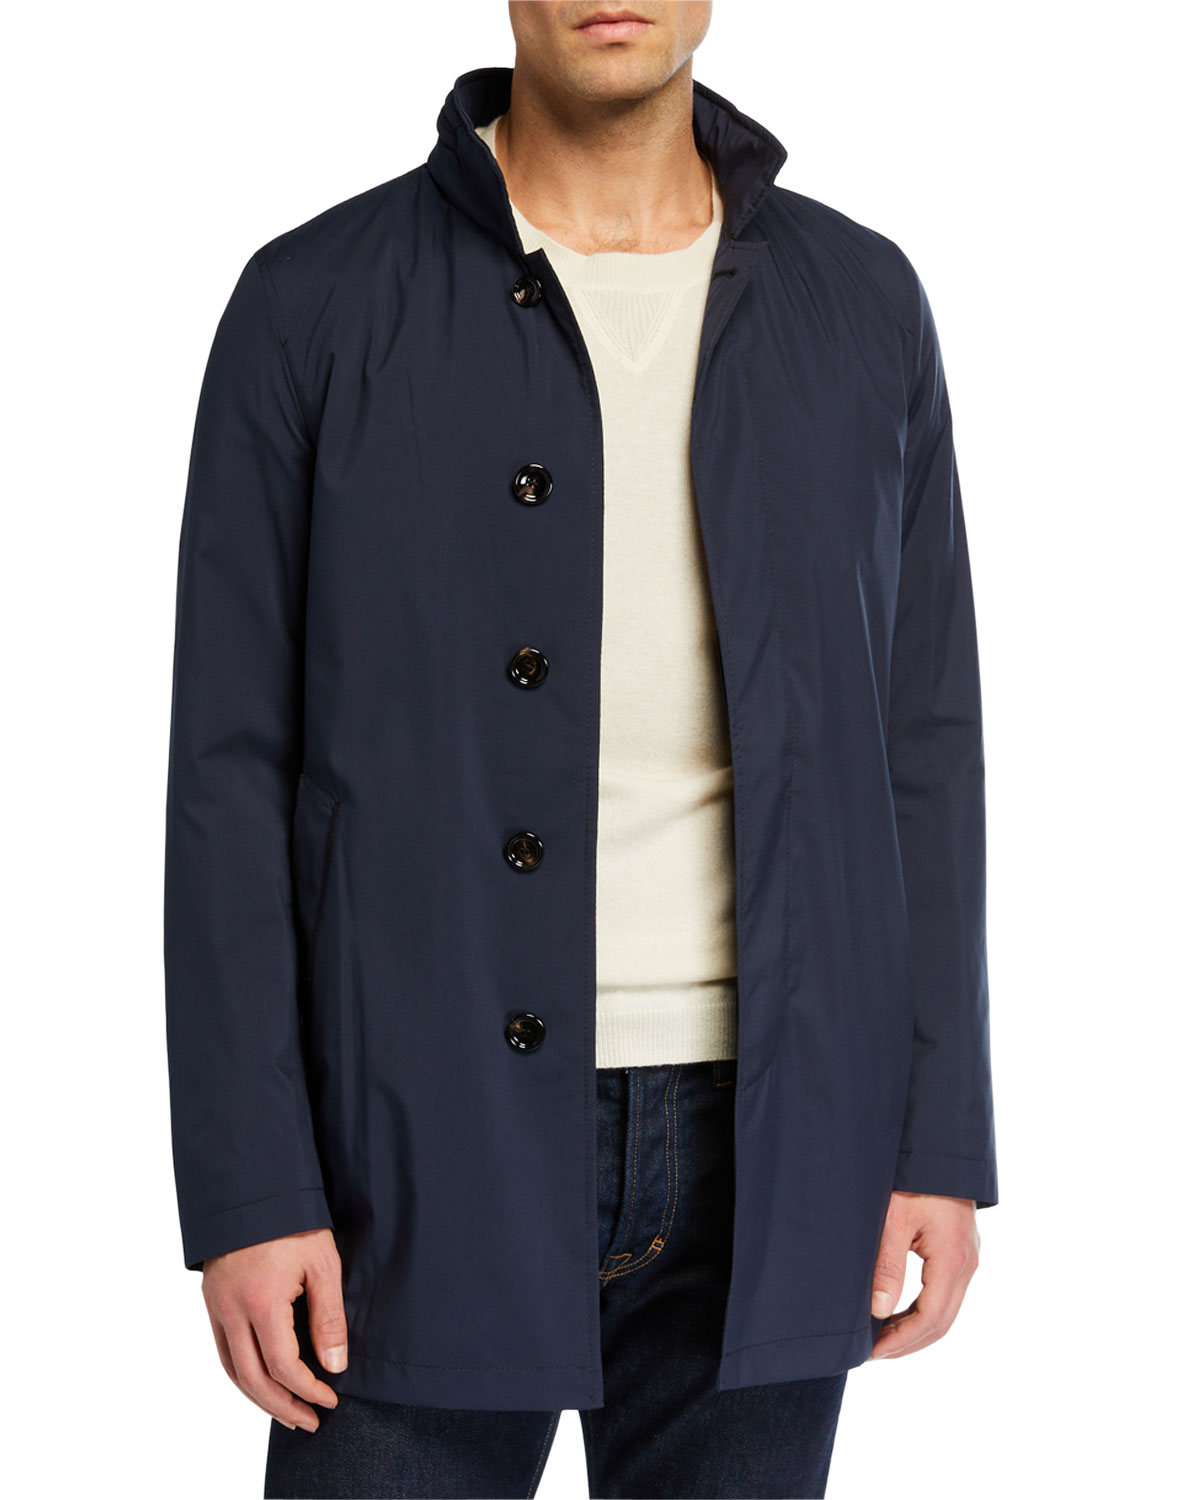 MANTO Men's Technical Stretch Raincoat in Navy Blue